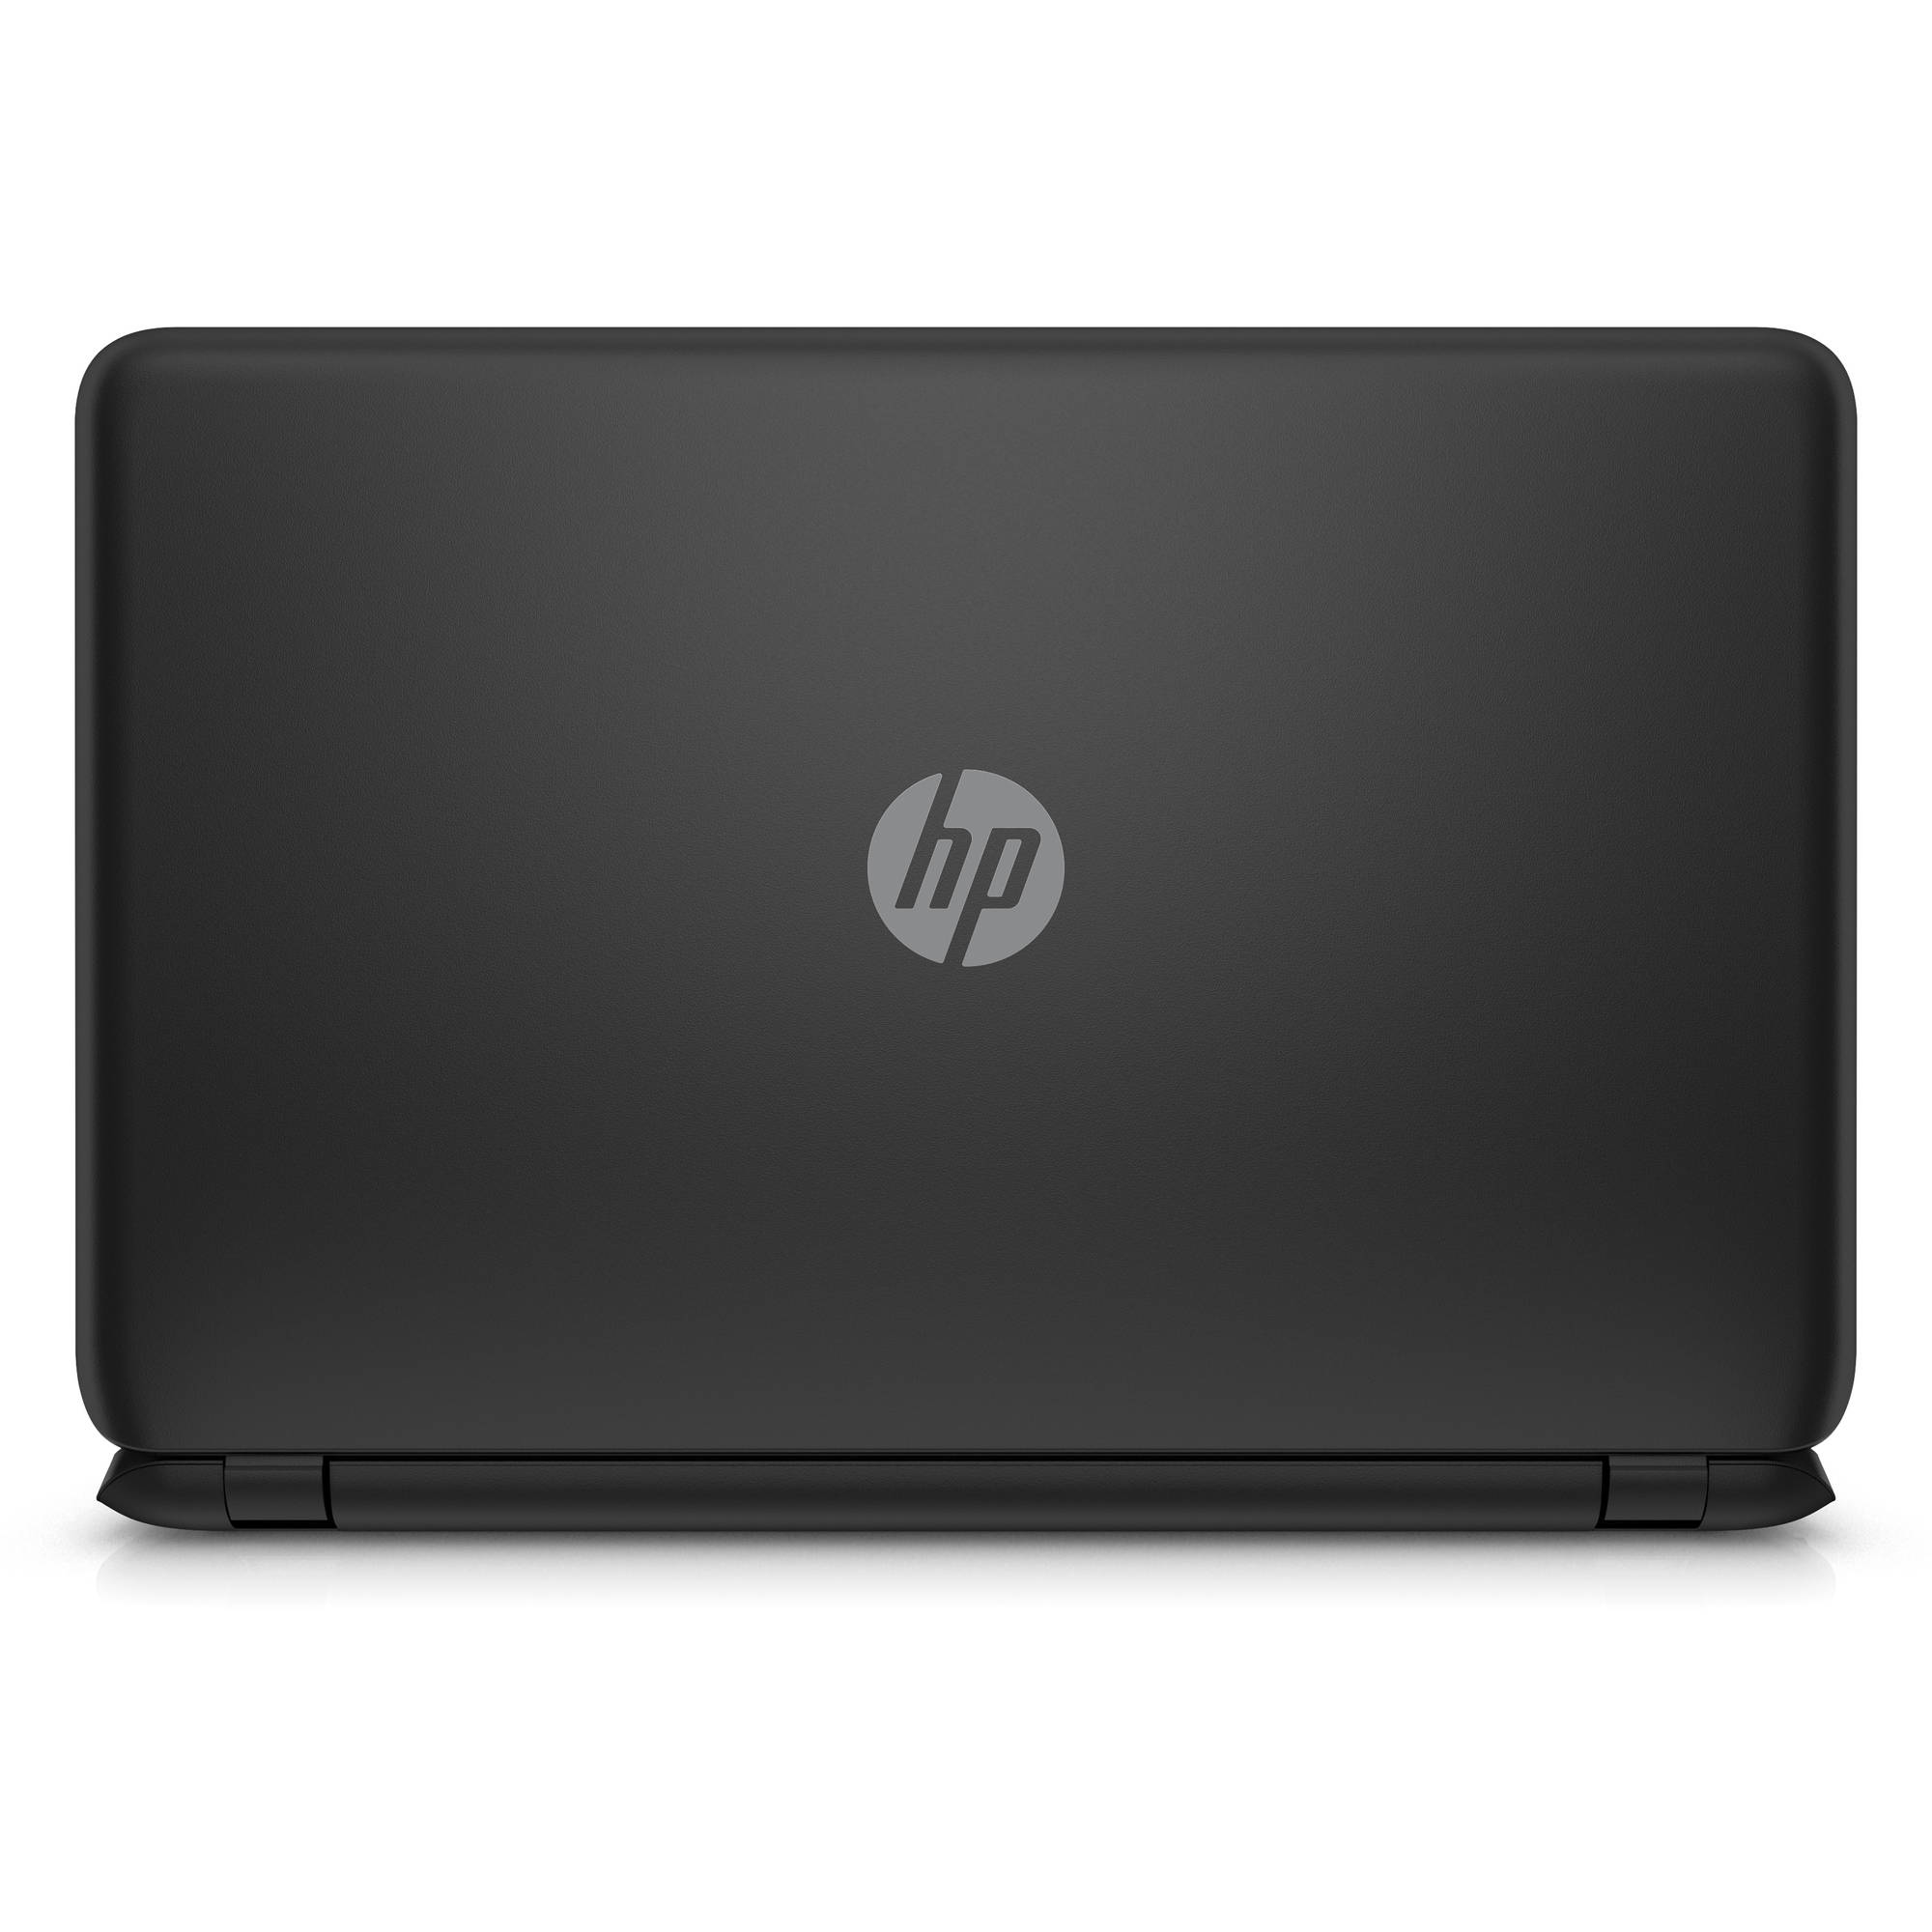 Laptop Pics, Technology Collection